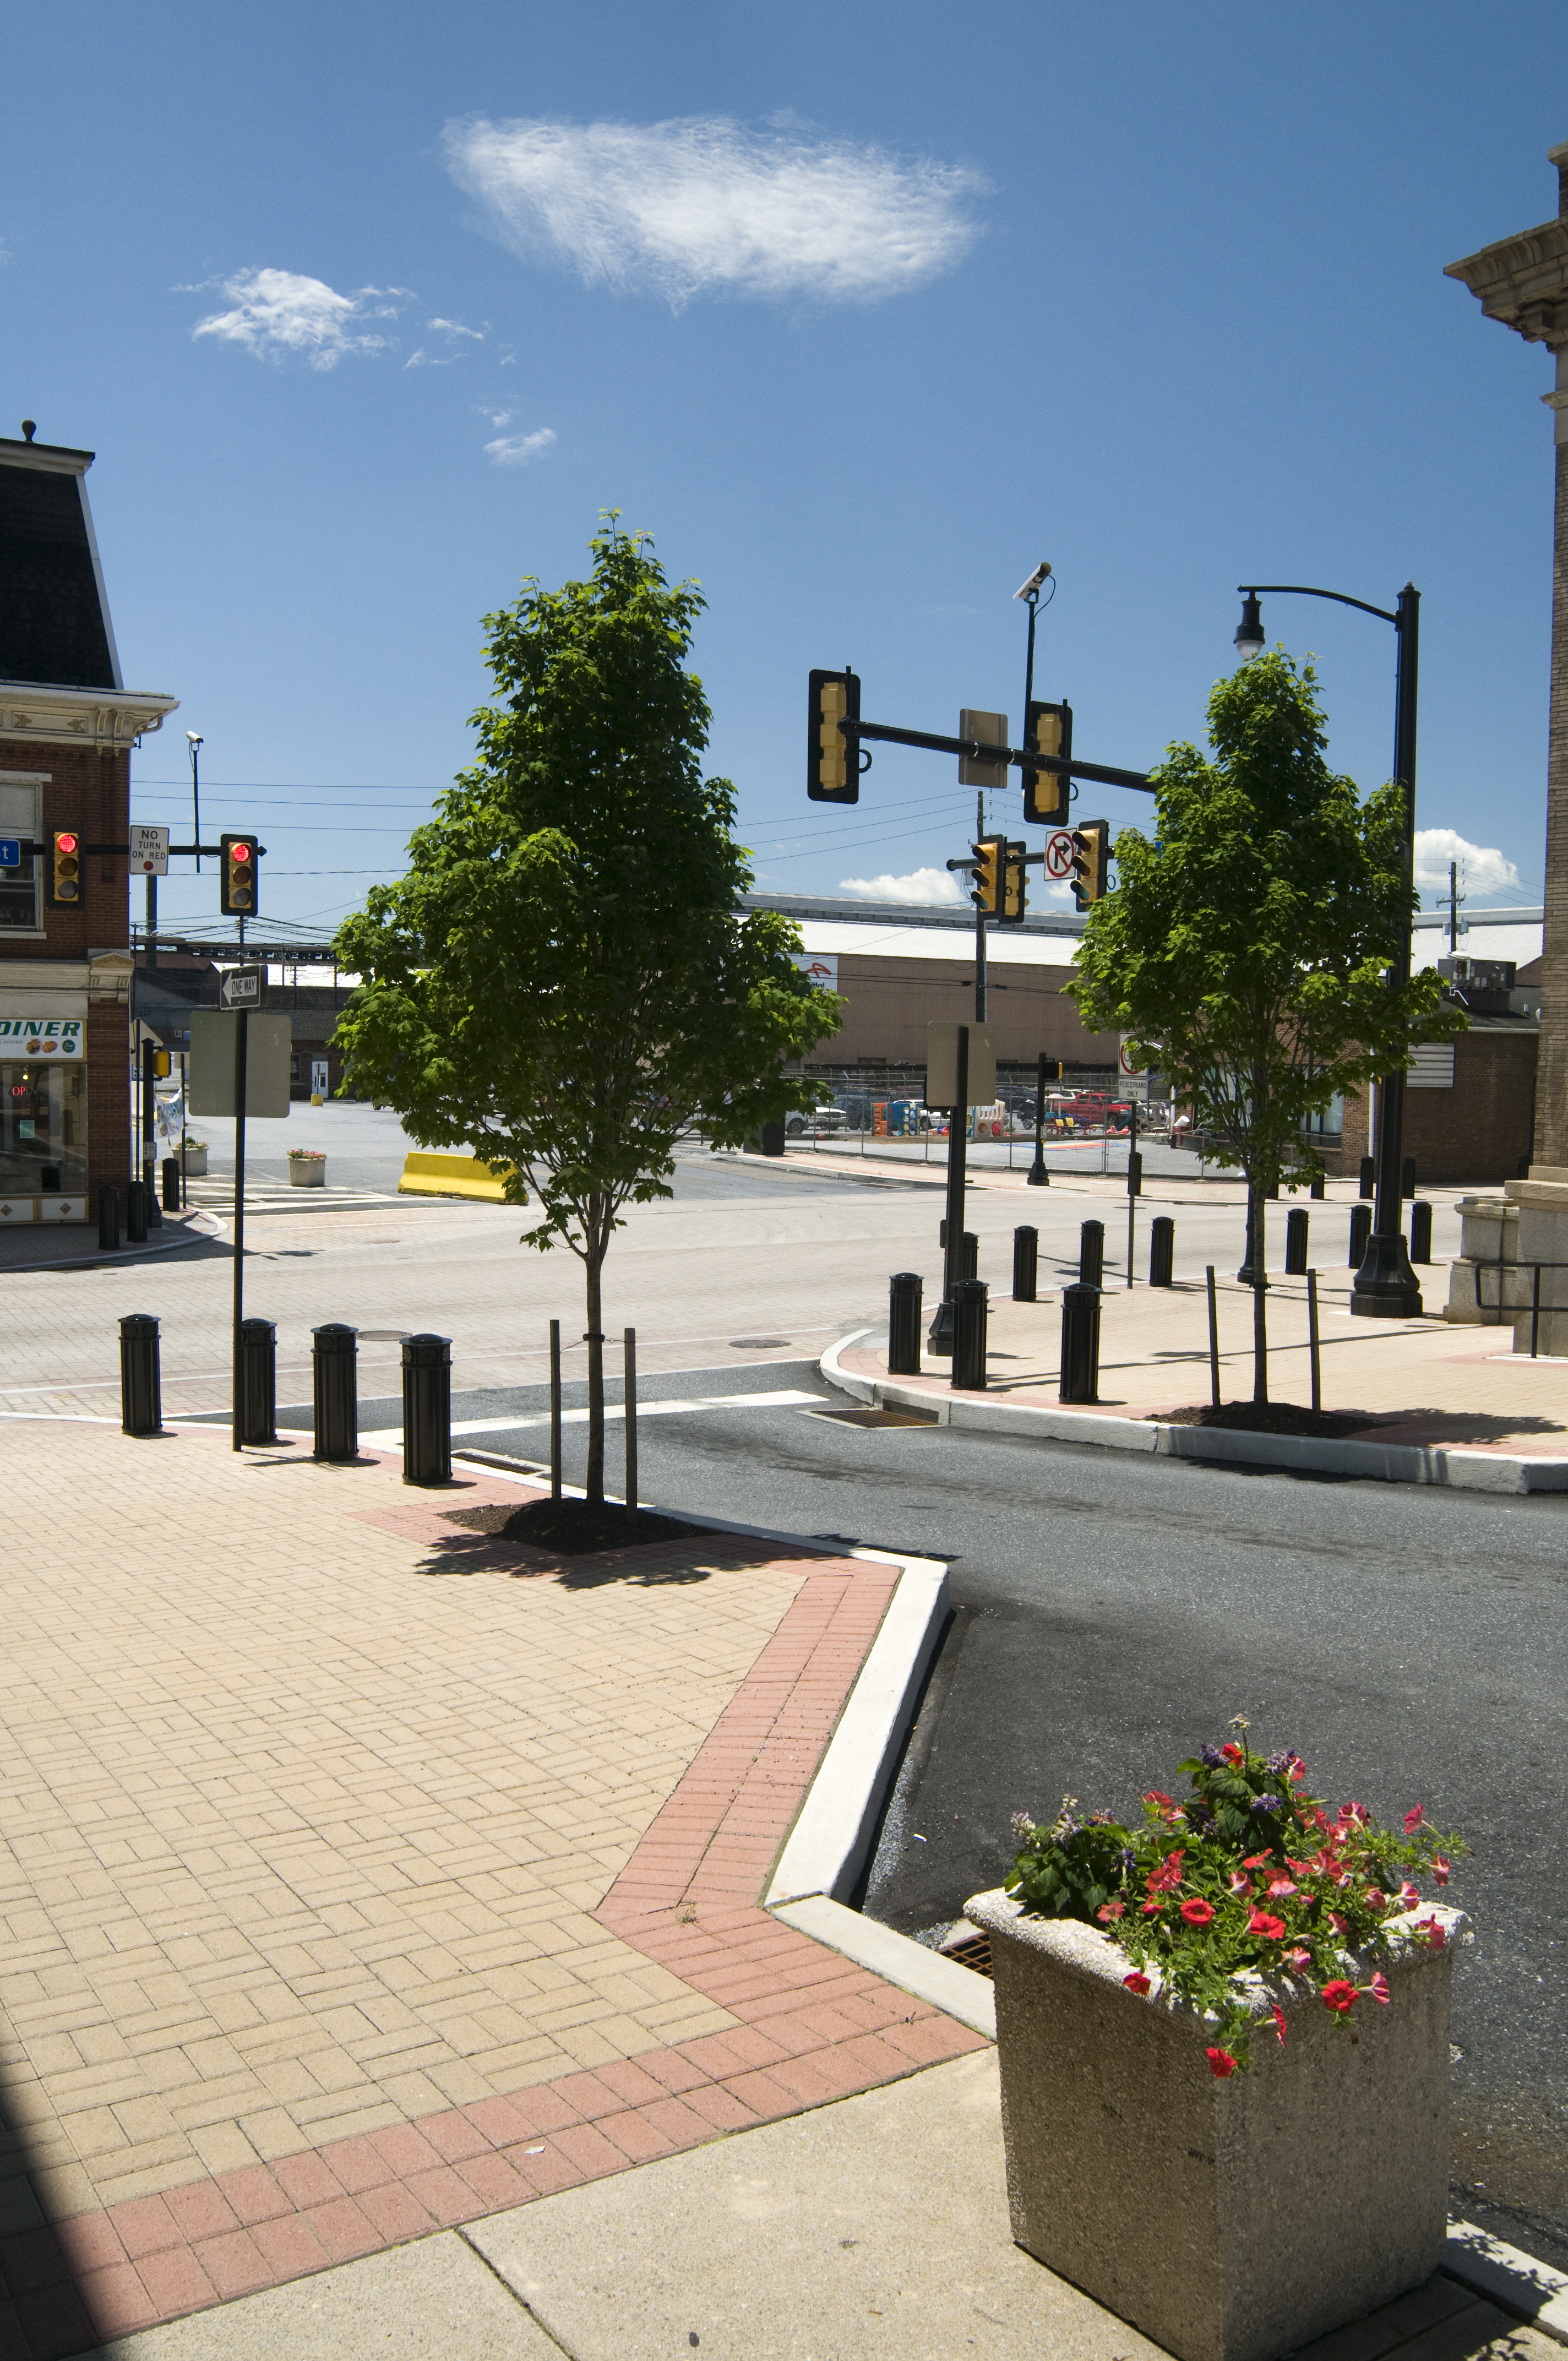 Streetscape To The North Of Hickory Click To Close: Reduce Speeding With Speed Humps And Other Traffic Control